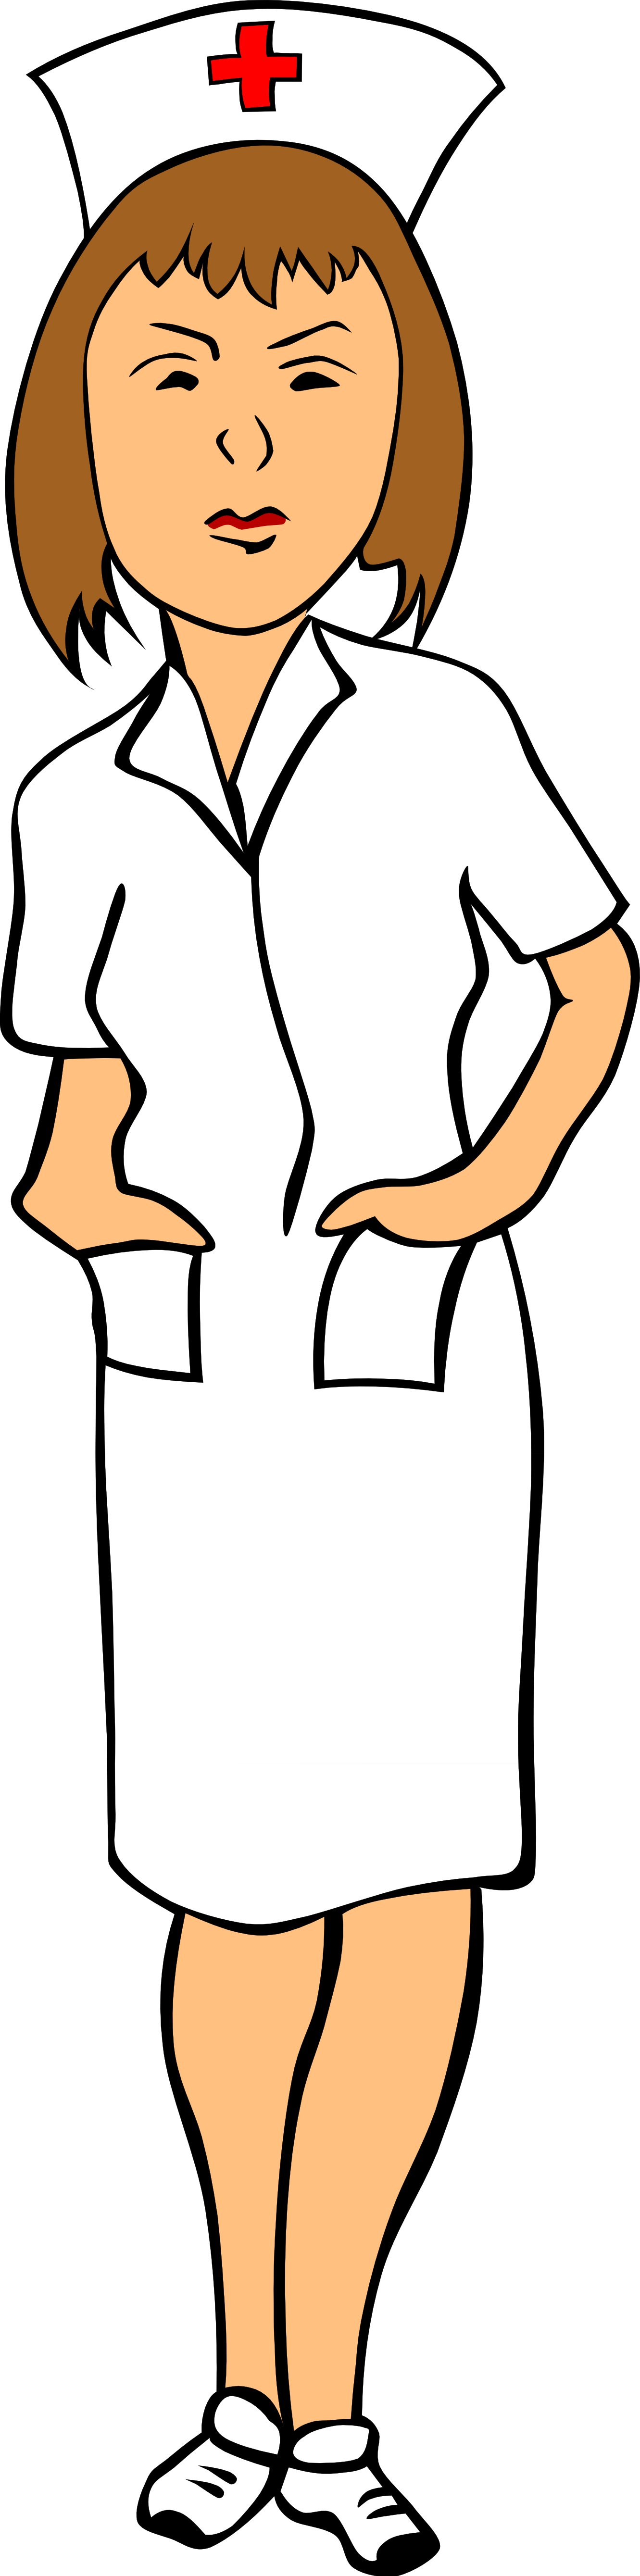 Nurse clipart. Free midwife cliparts download